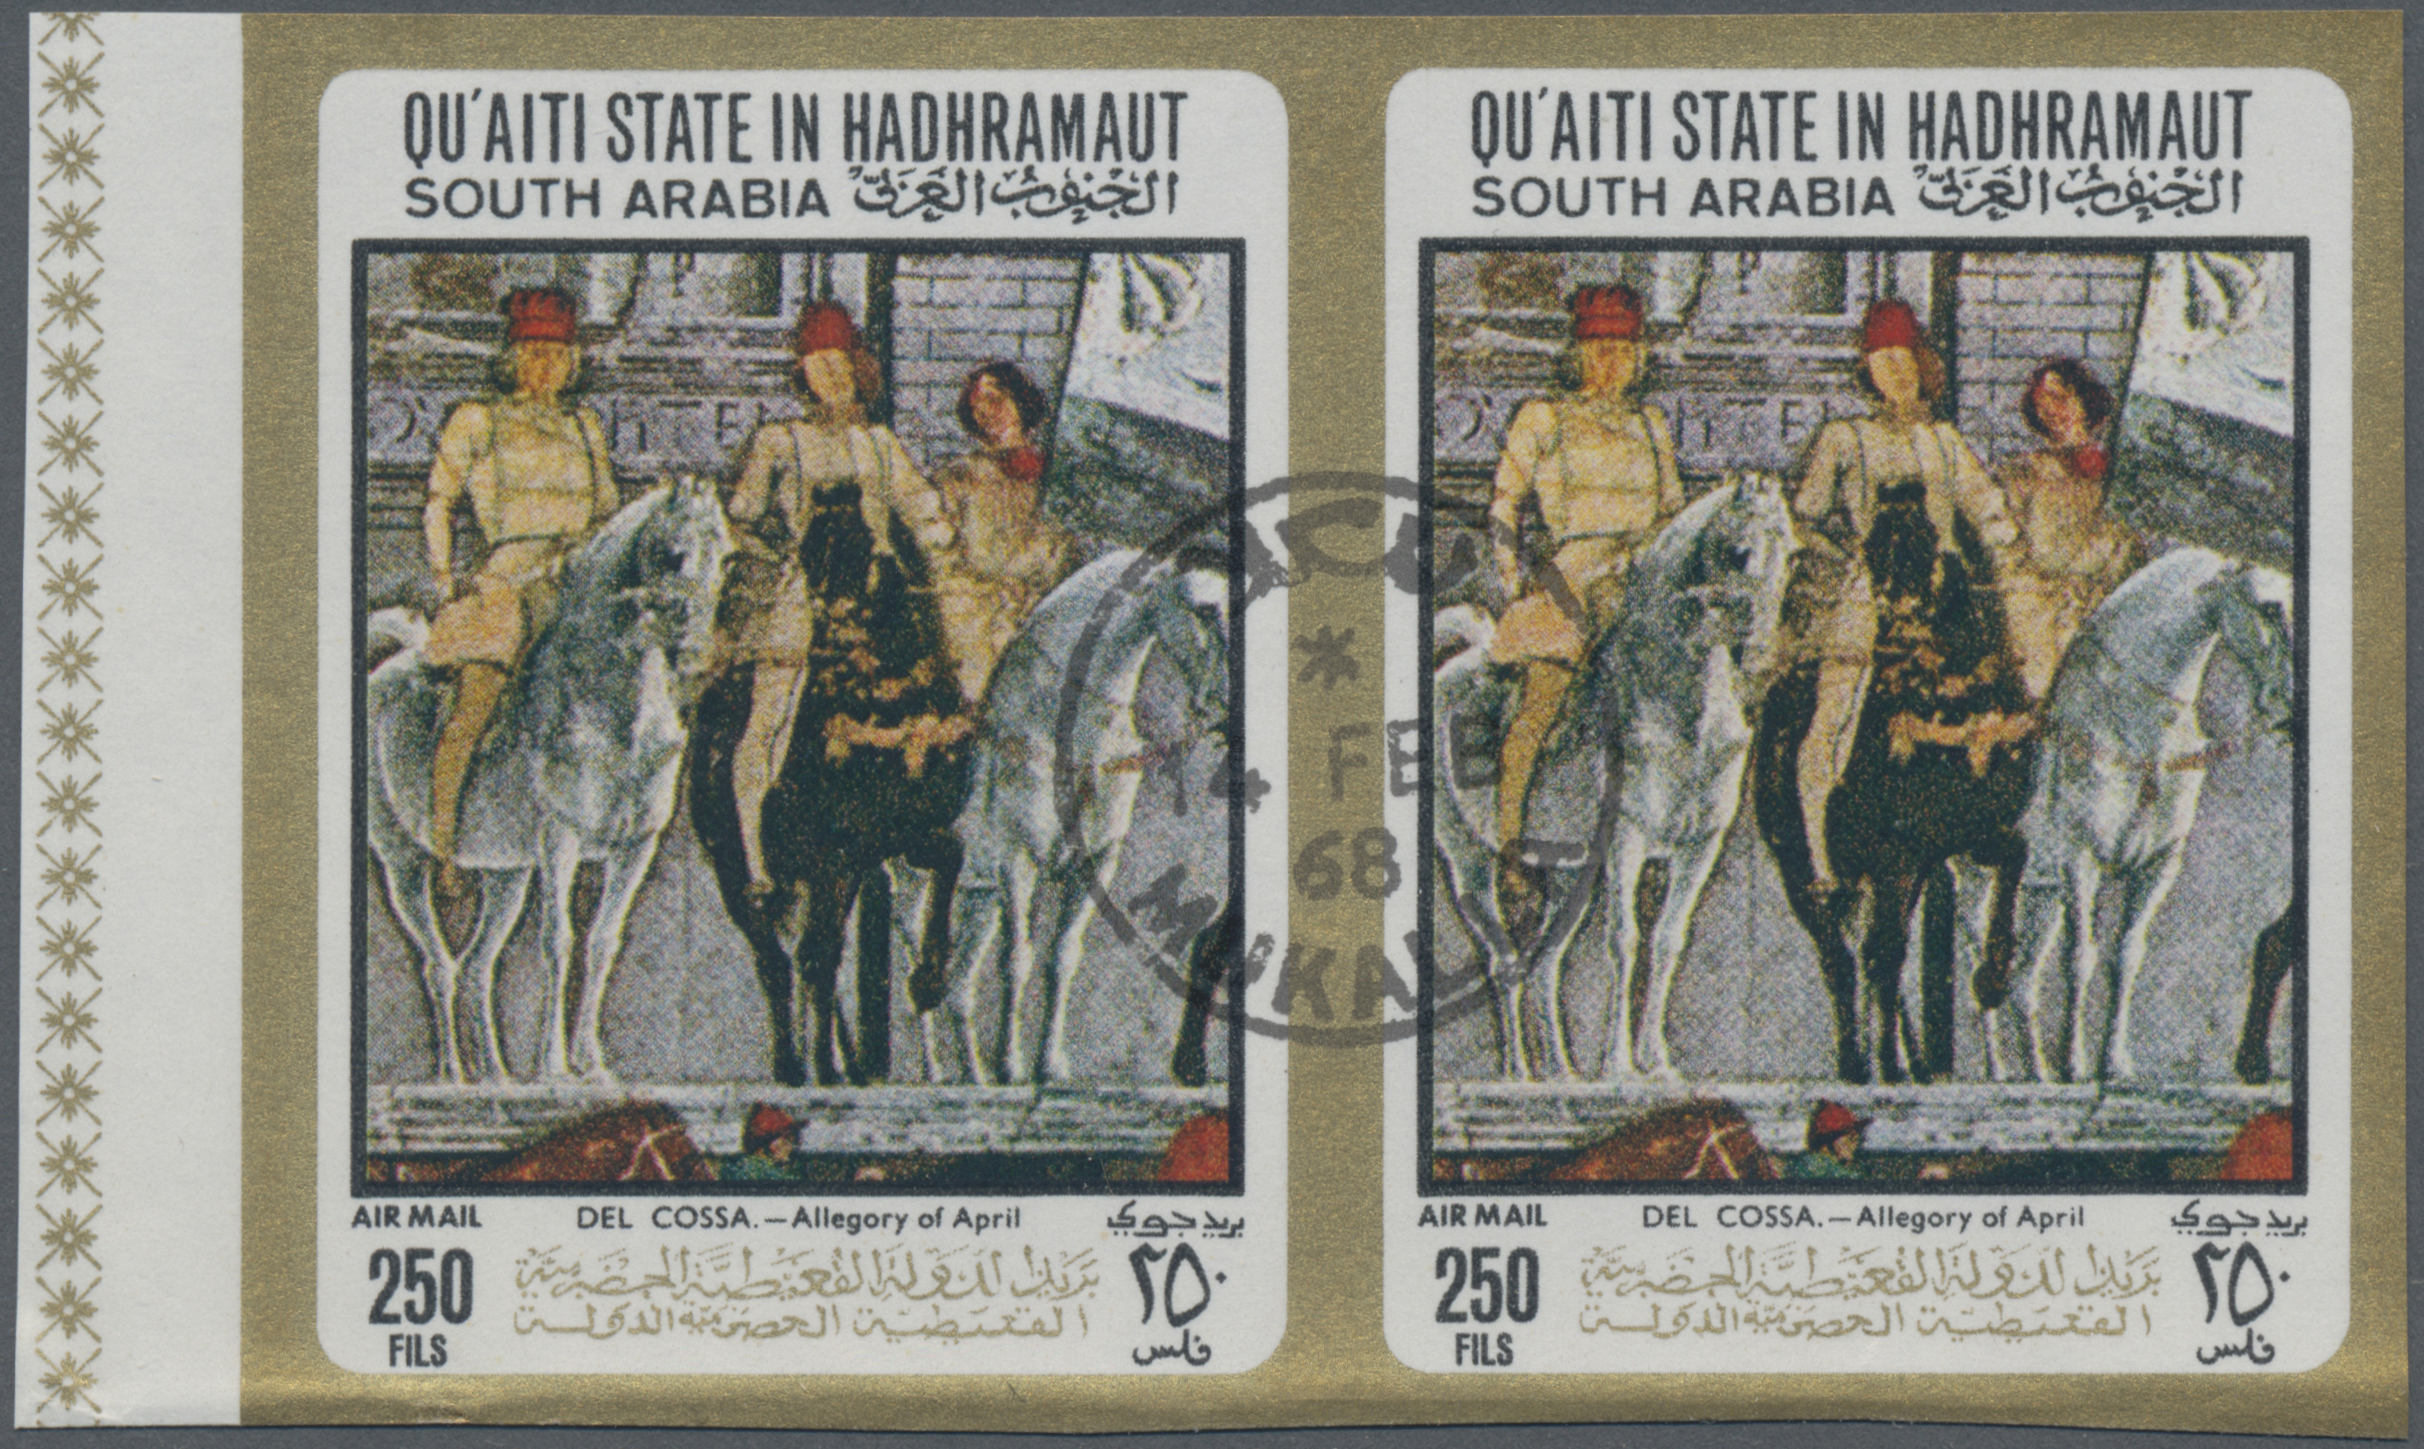 Lot 26605 - Aden - Qu'aiti State in Hadhramaut  -  Auktionshaus Christoph Gärtner GmbH & Co. KG Sale #46 Gollcetions Germany - including the suplement